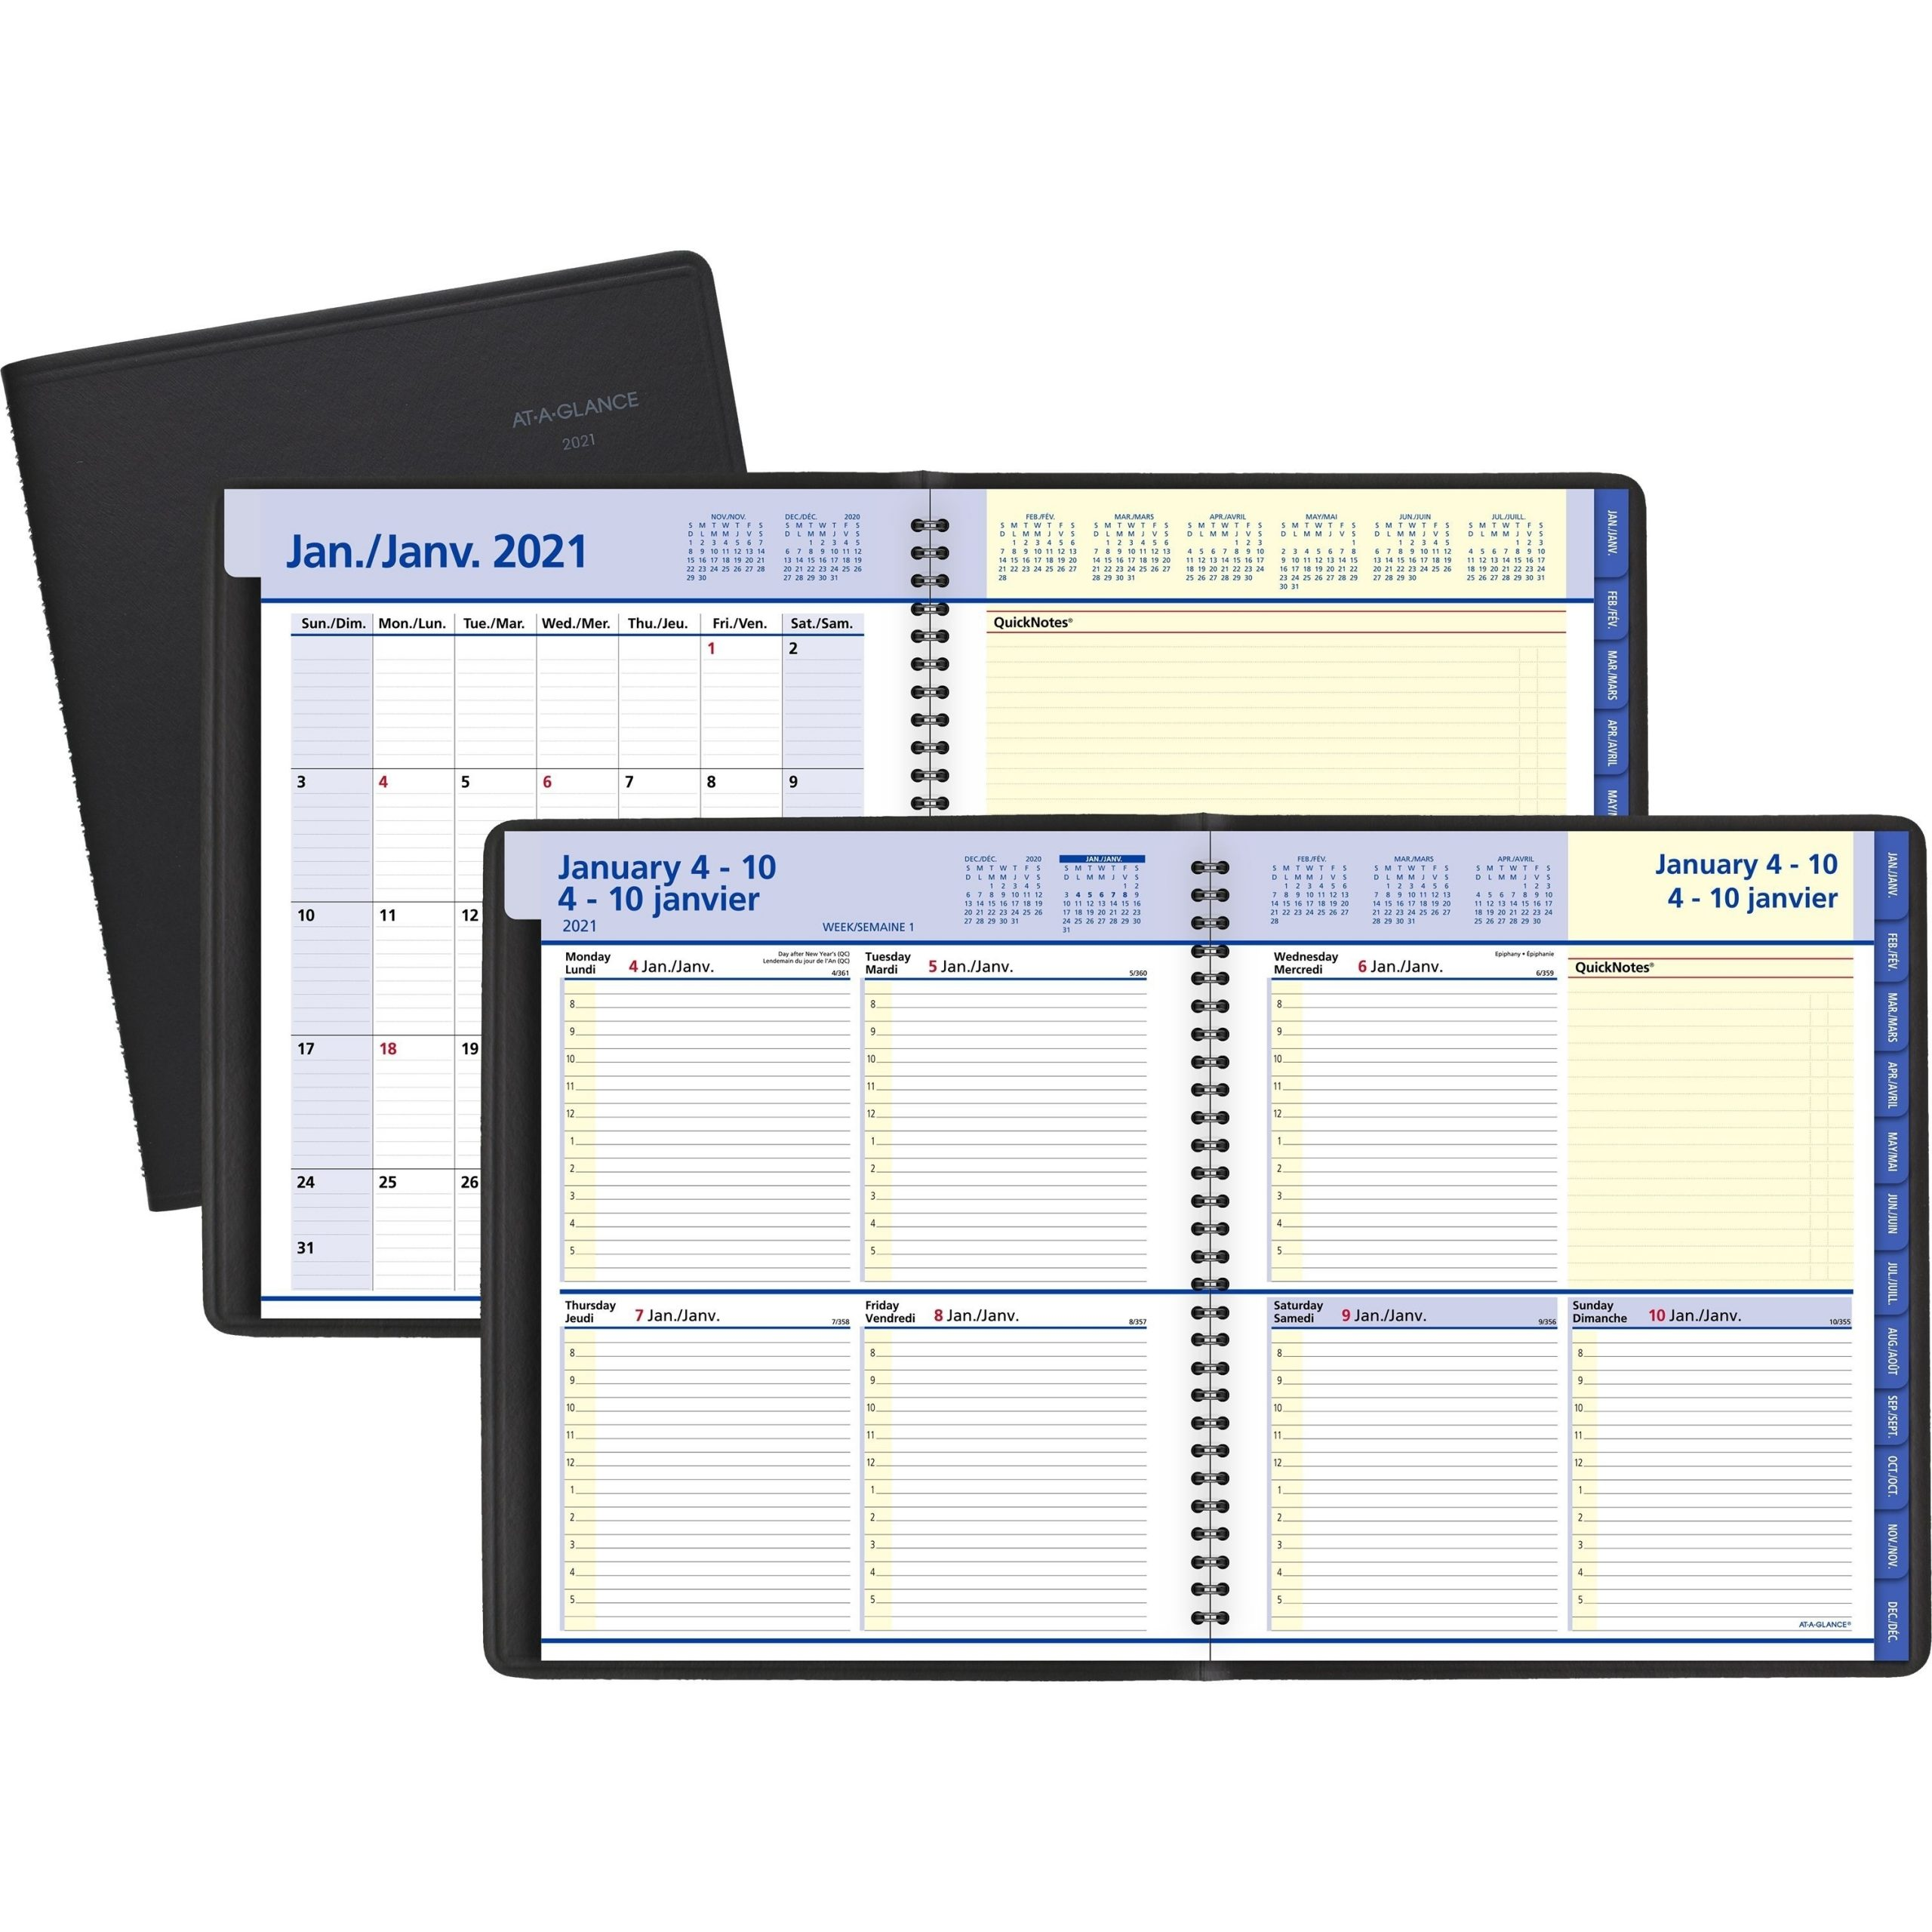 At-A-Glance Quicknotes Planner - Julian Dates - Weekly, Monthly - 1 Year -  January 2021 Till December 2021 - 8:00 Am To 5:00 Pm - 1 Week Double Page